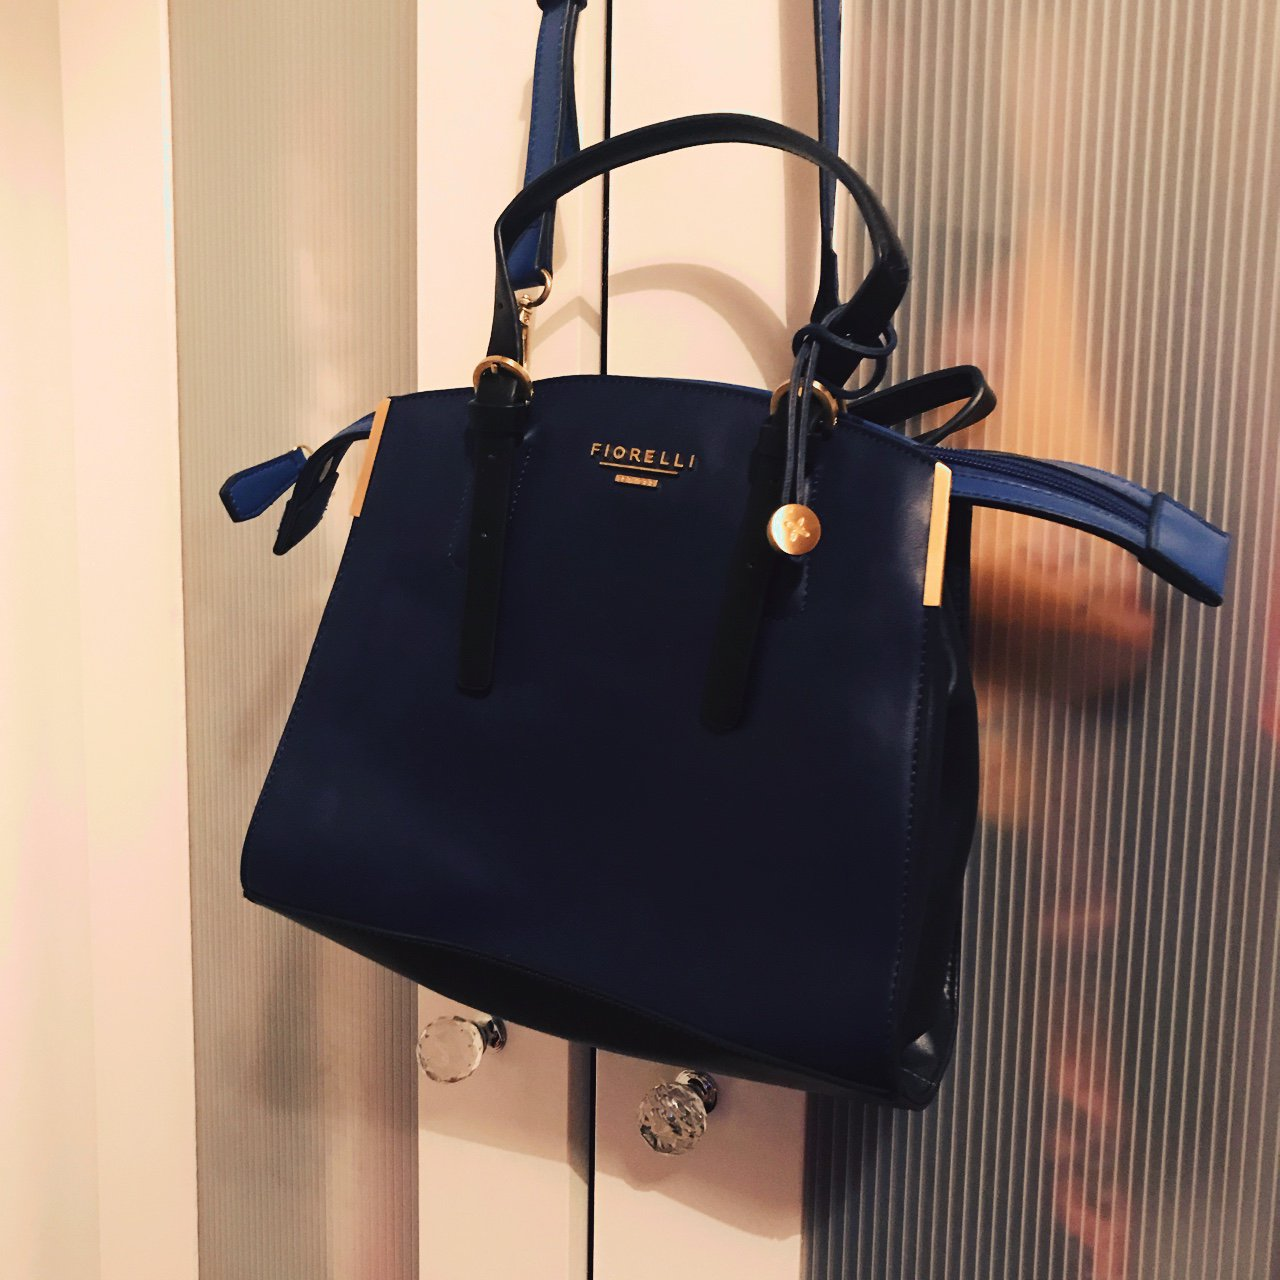 7c27284fb284 Fiorelli navy small bag with black strap. Worn once - in new - Depop